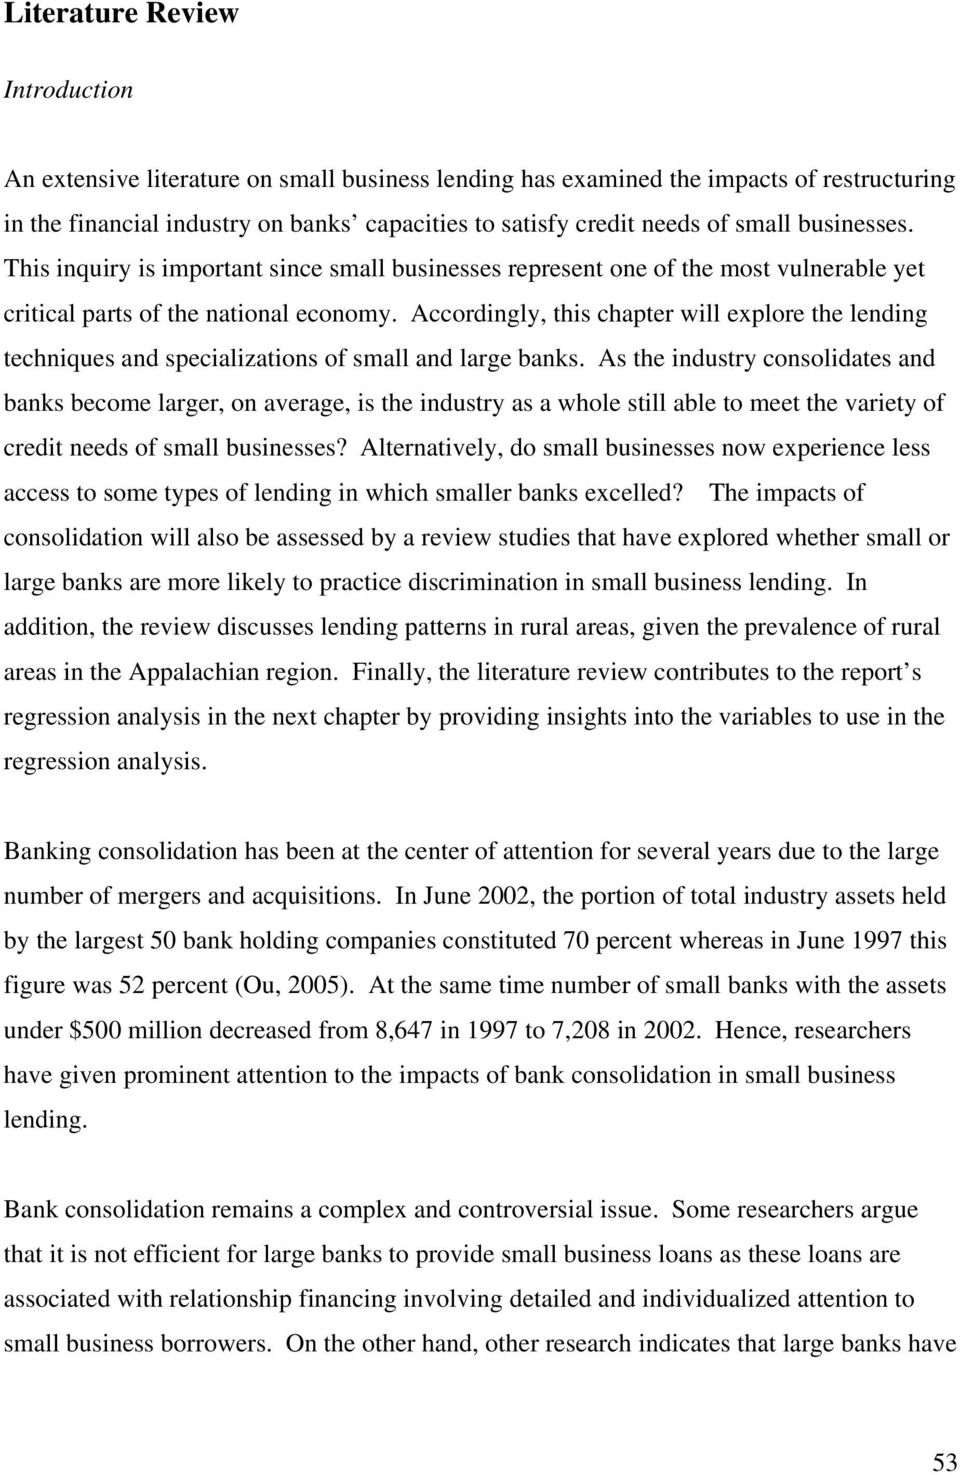 Accordingly, this chapter will explore the lending techniques and specializations of small and large banks.